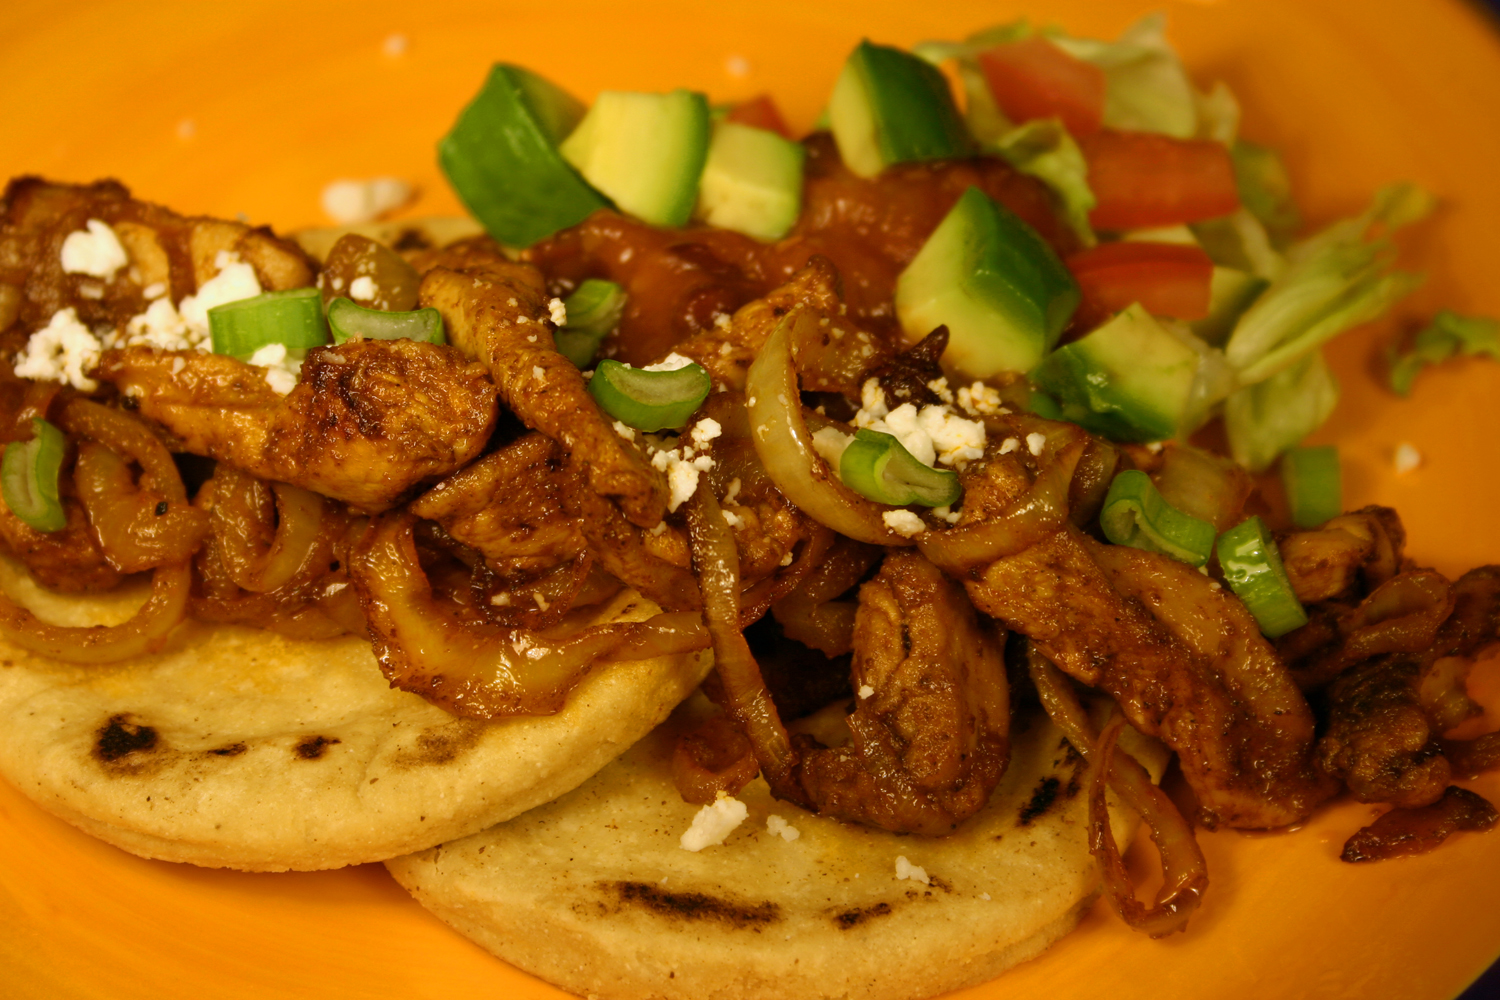 //www.gameandfishmag.com/files/best-thanksgiving-recipes/gf-quailfajitas.jpg